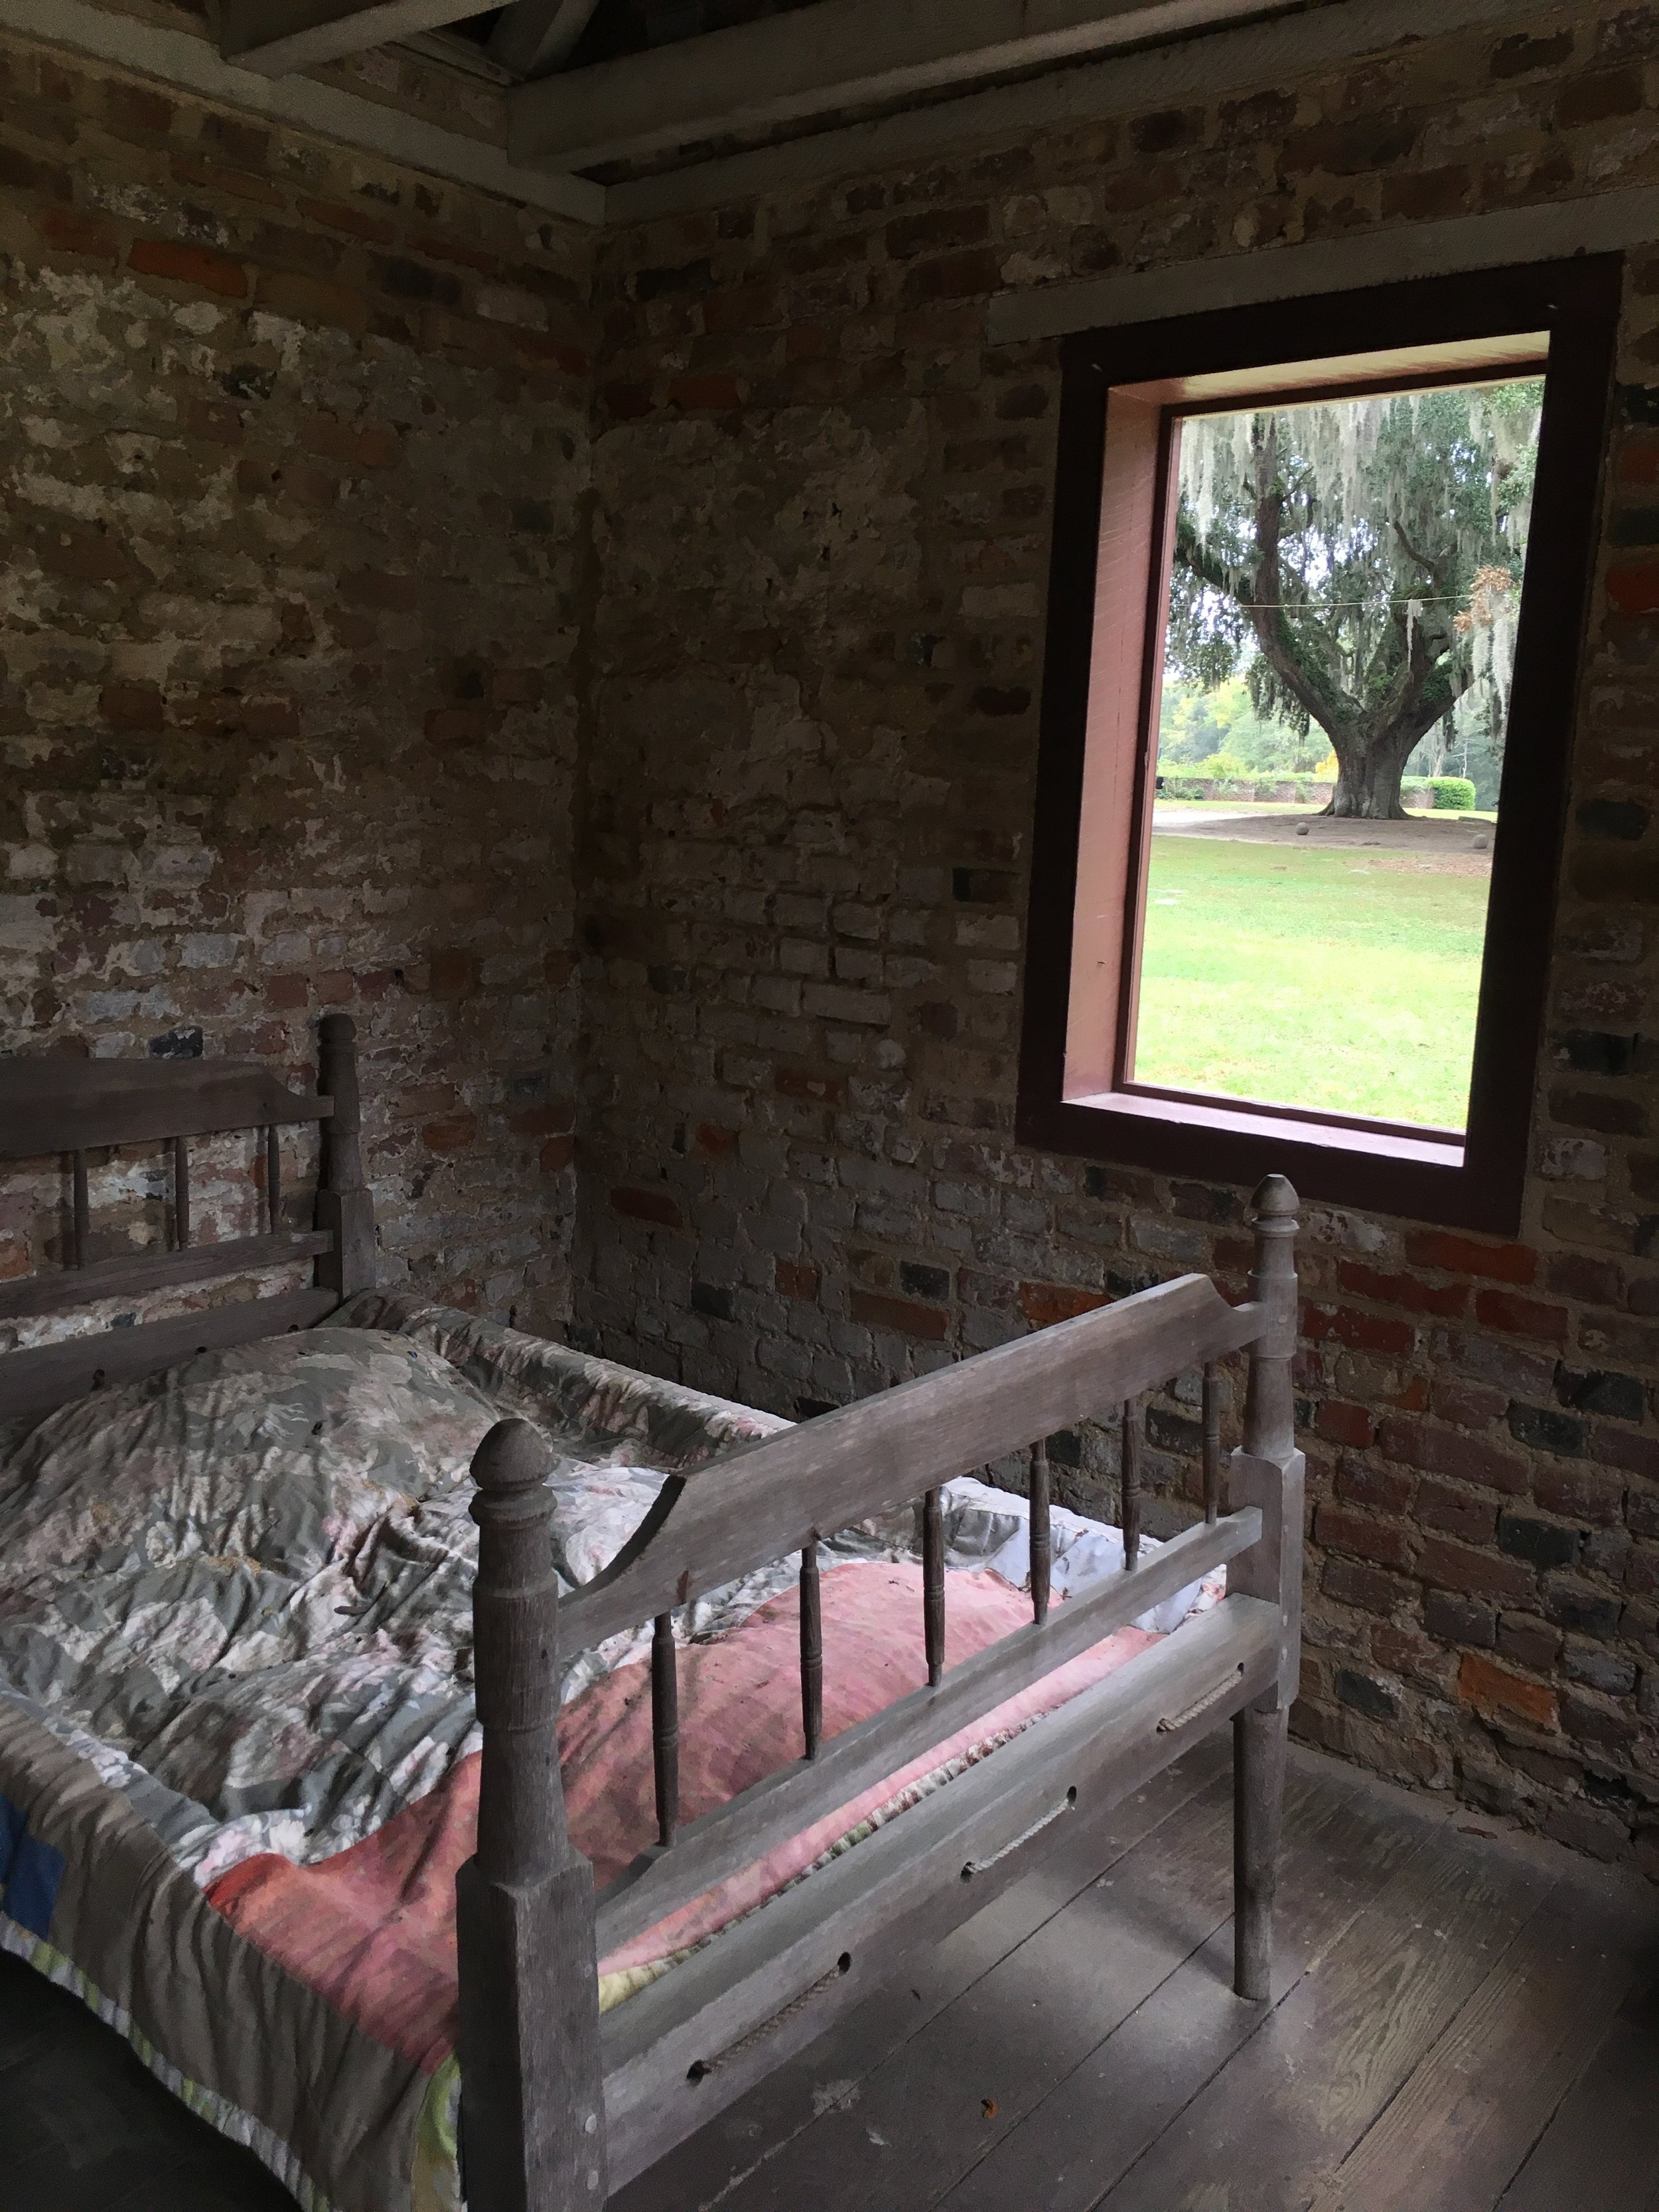 A haunting scene in a slave cabin at Boone Hall Plantation. Many people would have slept on pallets on the floor.